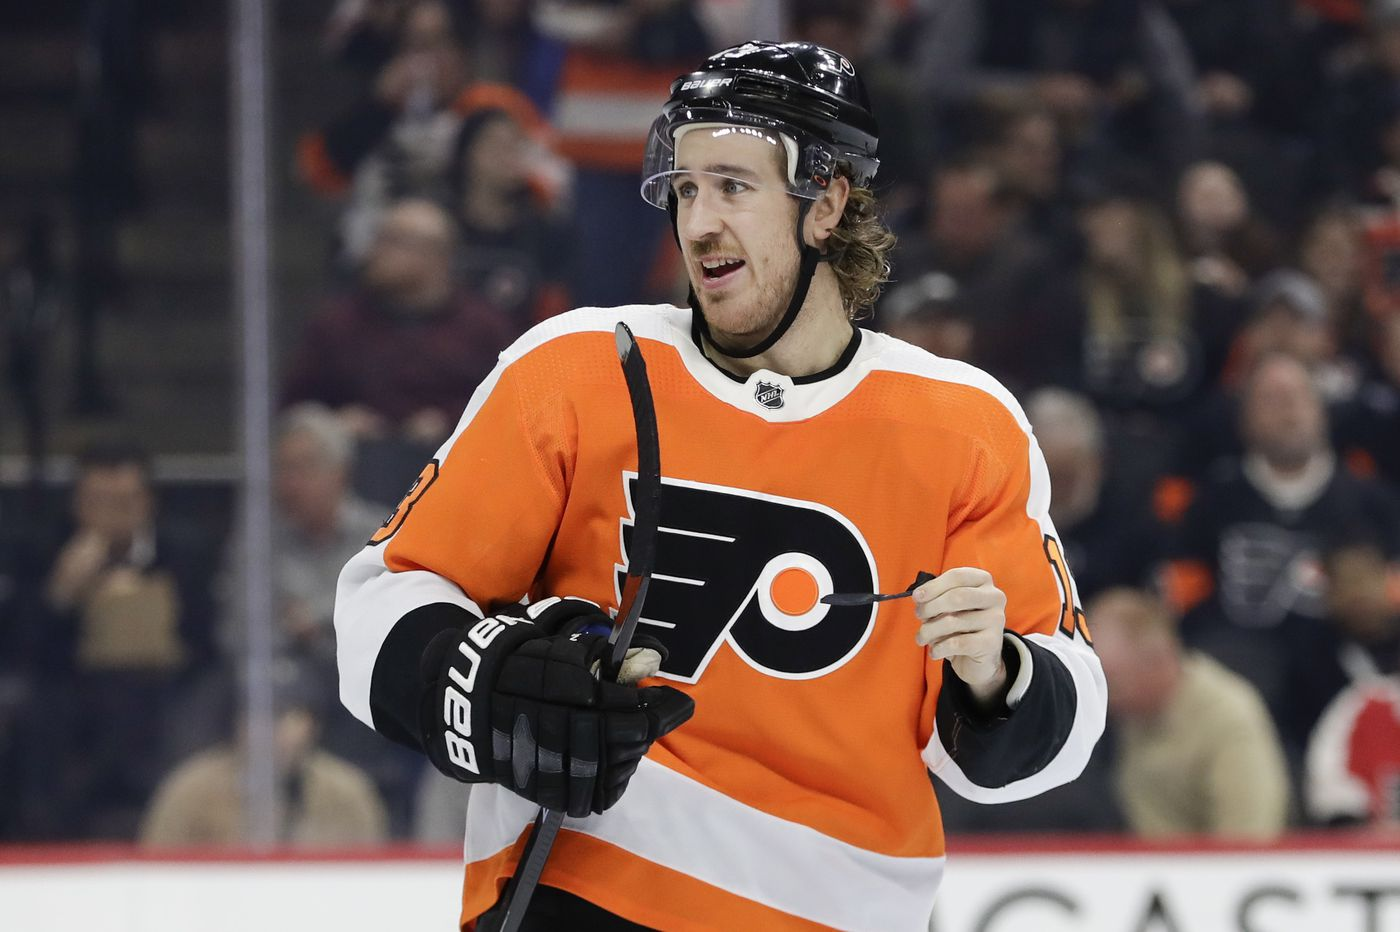 Flyers' Kevin Hayes looks to come out of slump against college teammate Johnny Gaudreau